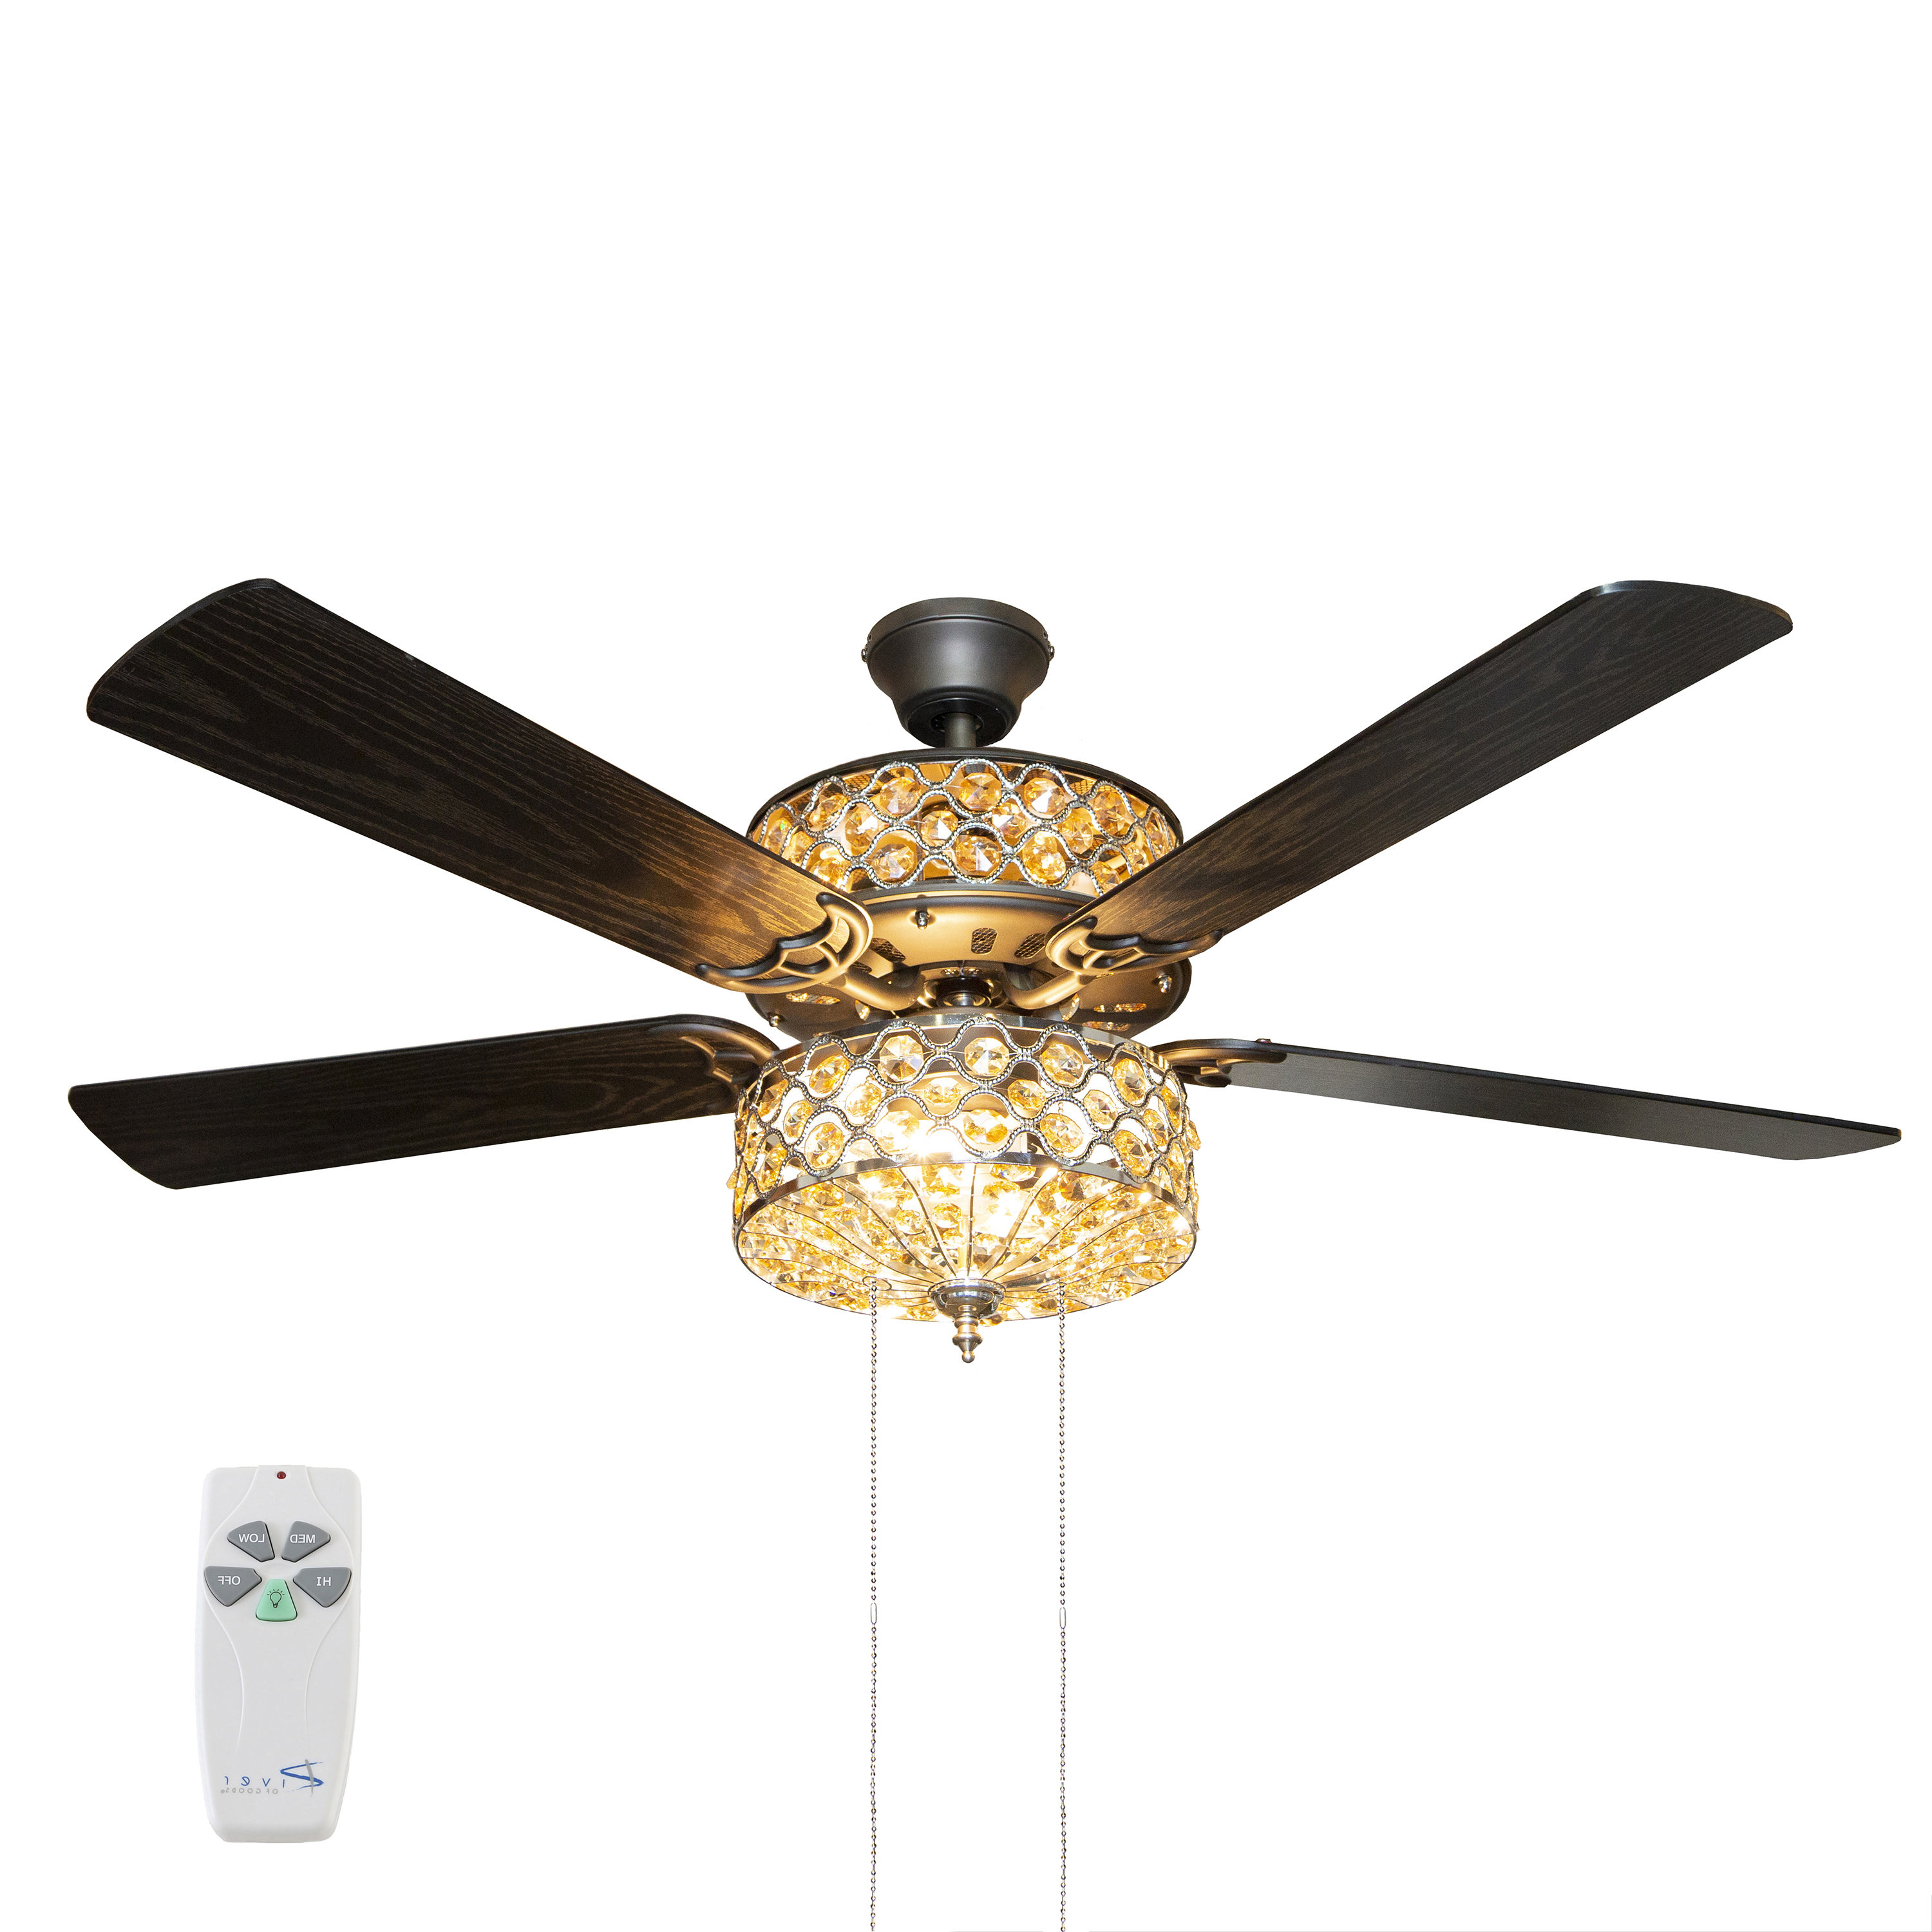 """Norah 5 Blade Ceiling Fans With Latest 52"""" Irven 5 Blade Ceiling Fan With Remote, Light Kit Included (View 12 of 20)"""